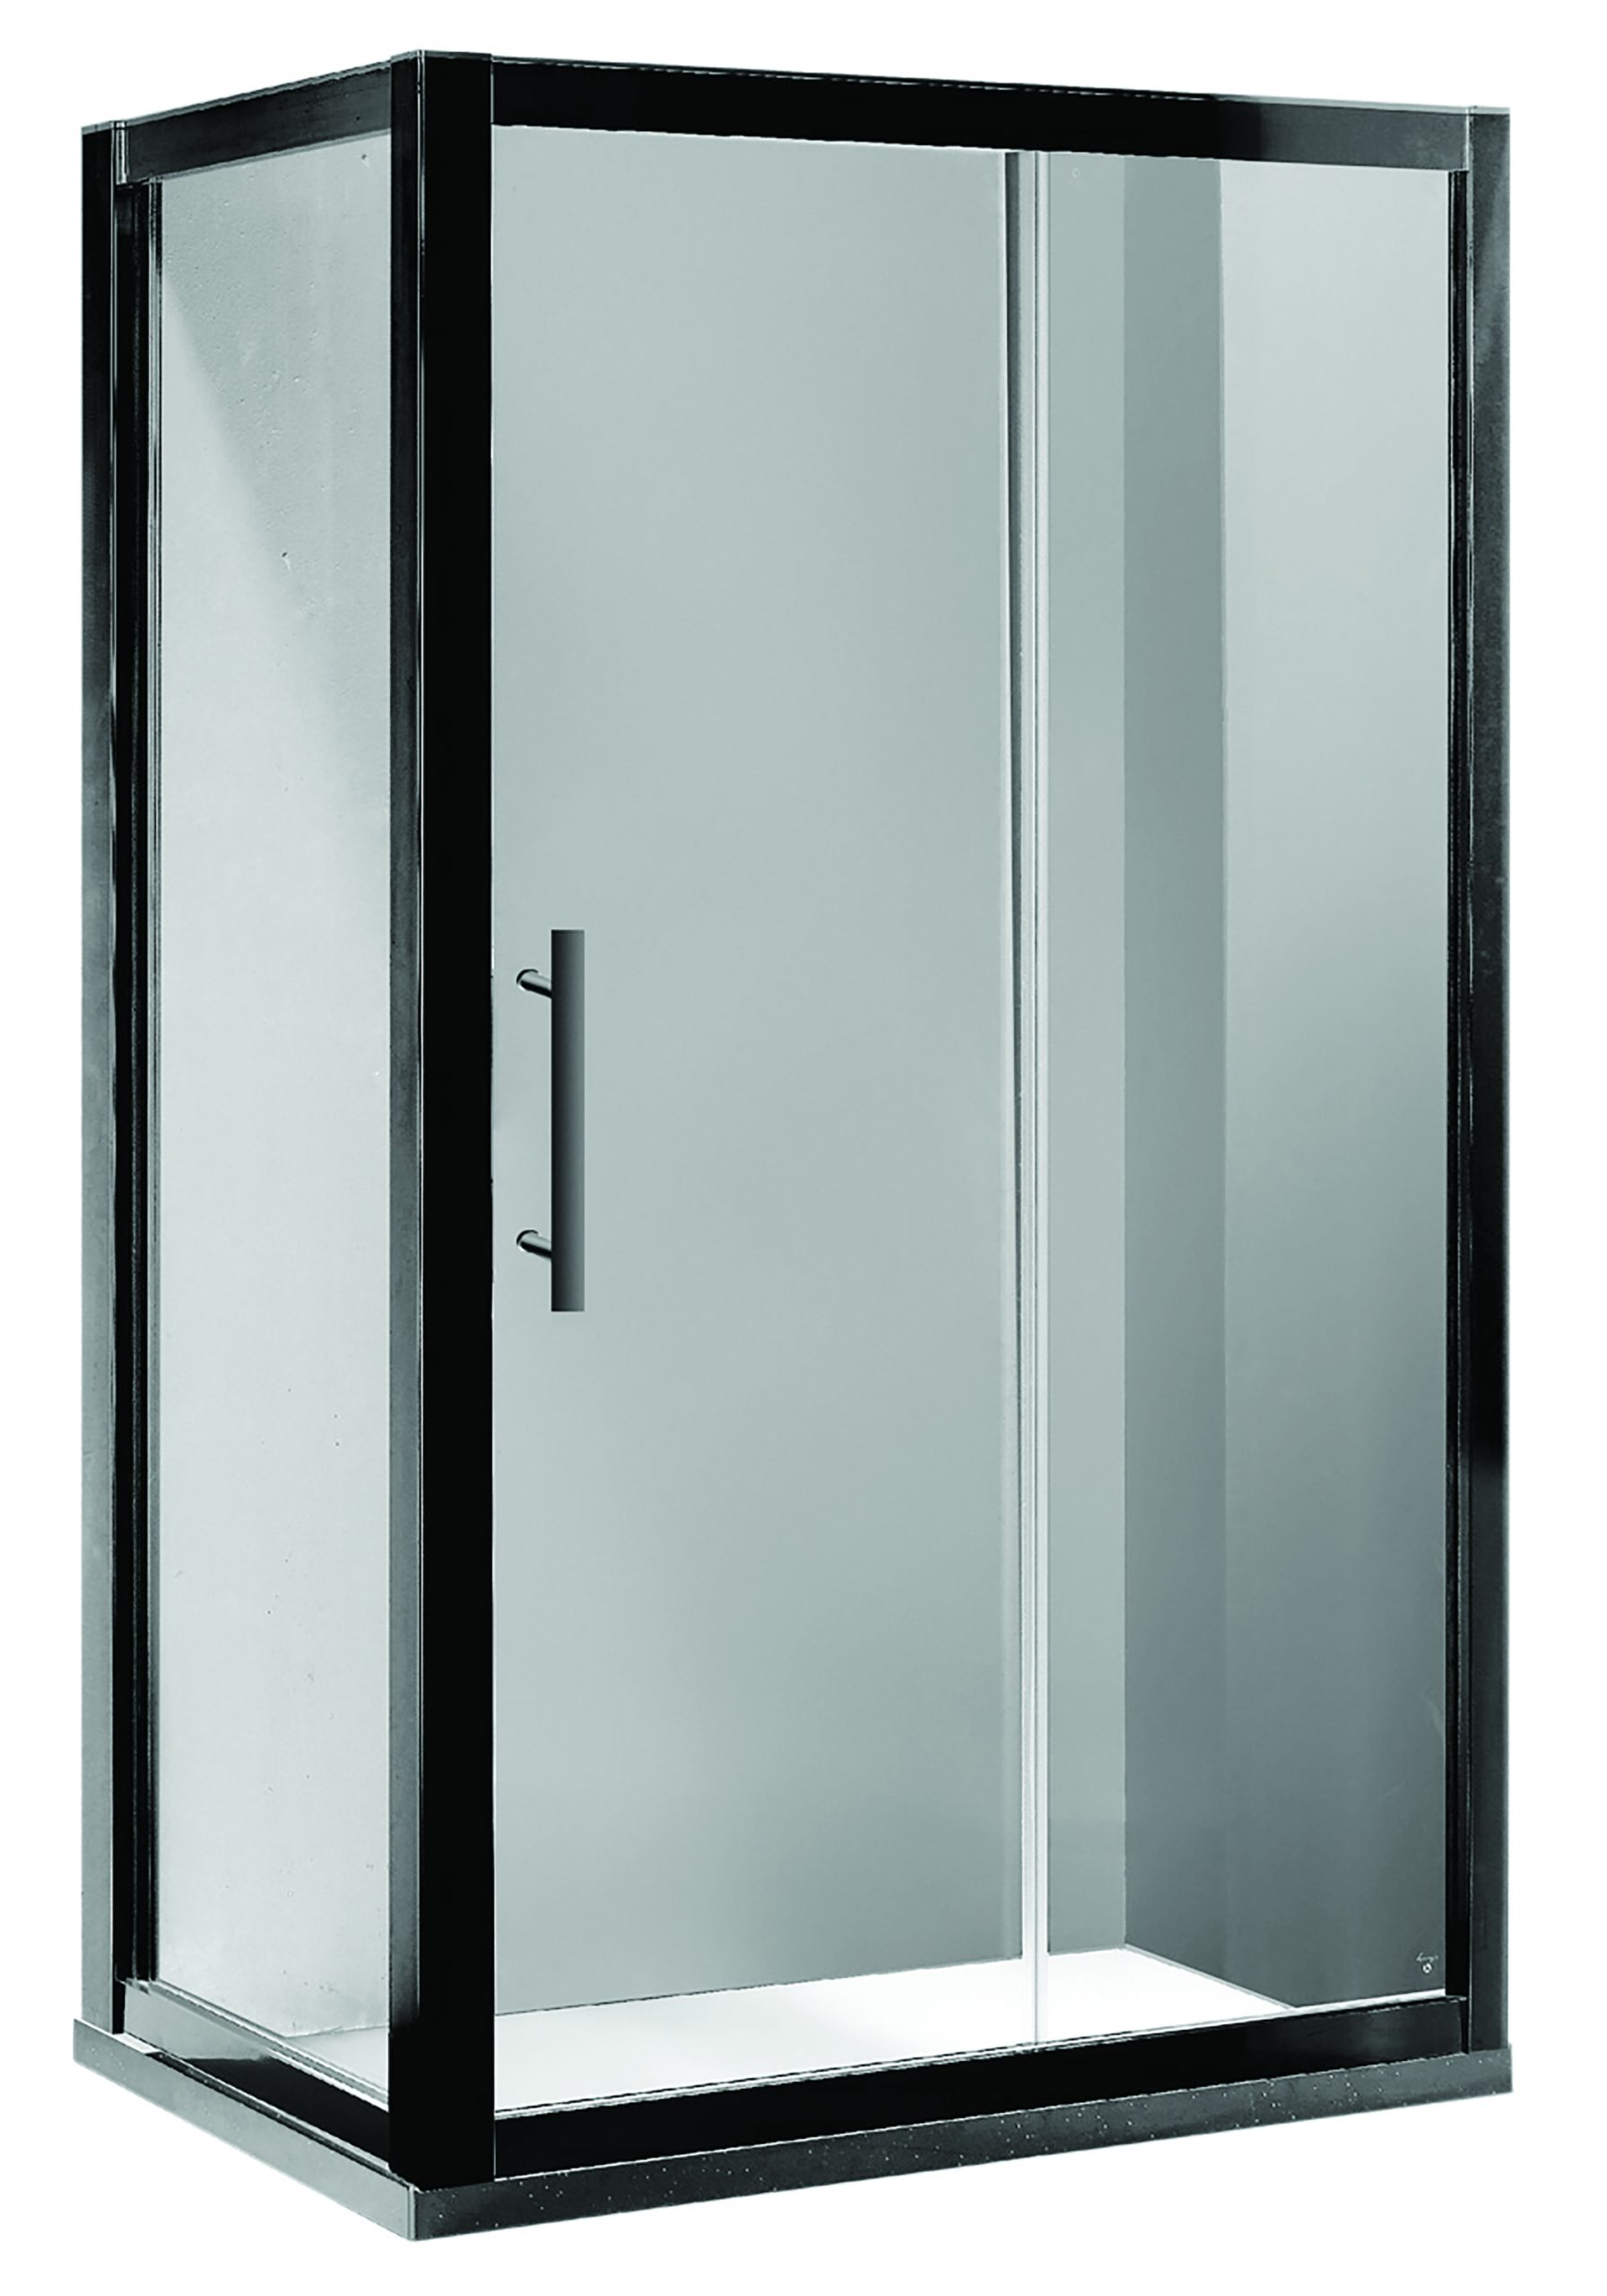 Onyx Sliding Shower Screen